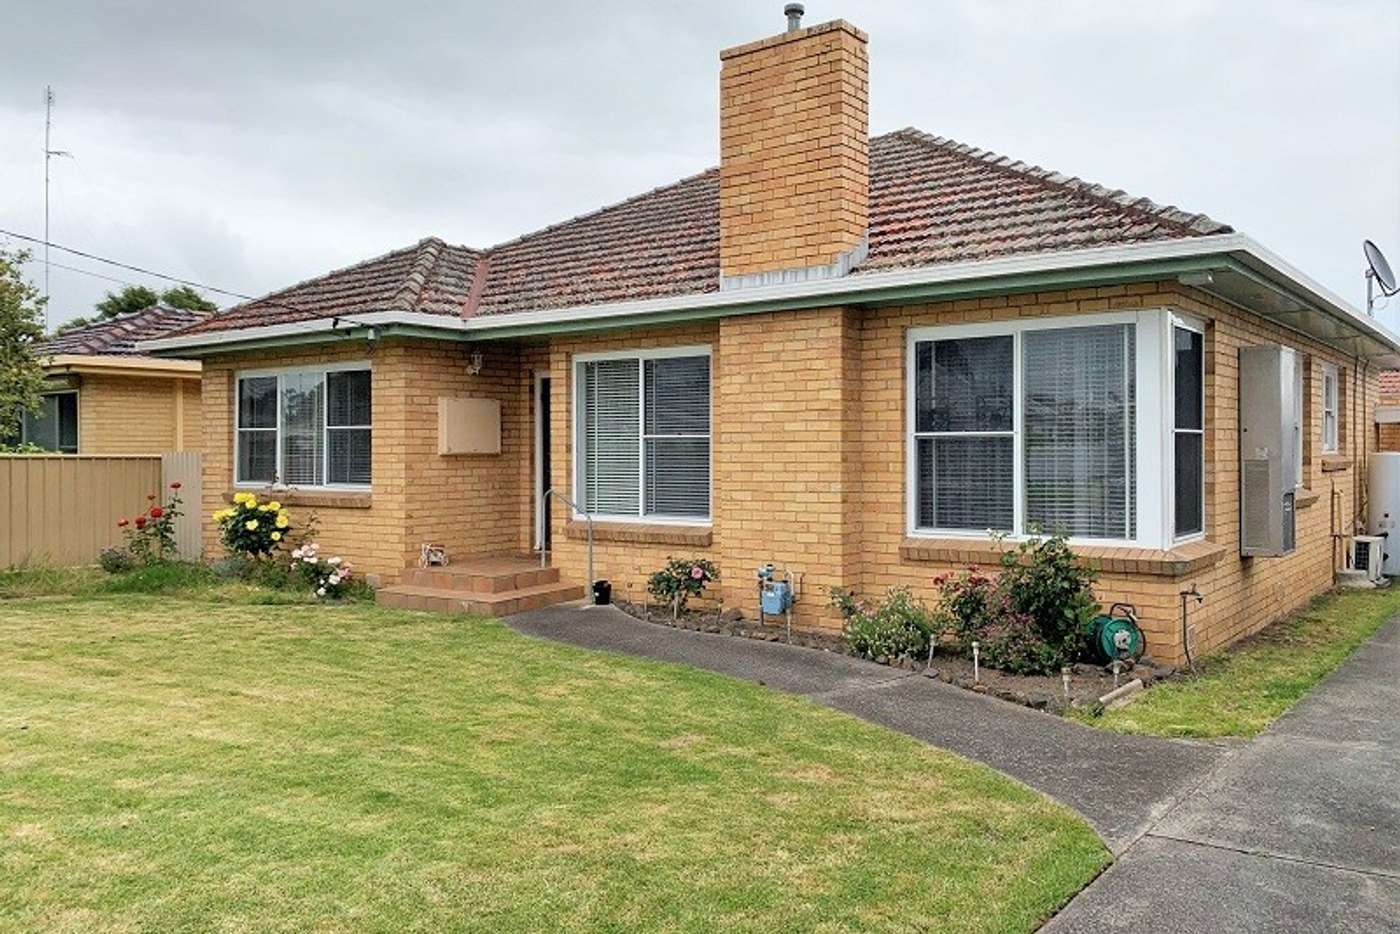 Main view of Homely house listing, 35 Scott Street, Colac VIC 3250